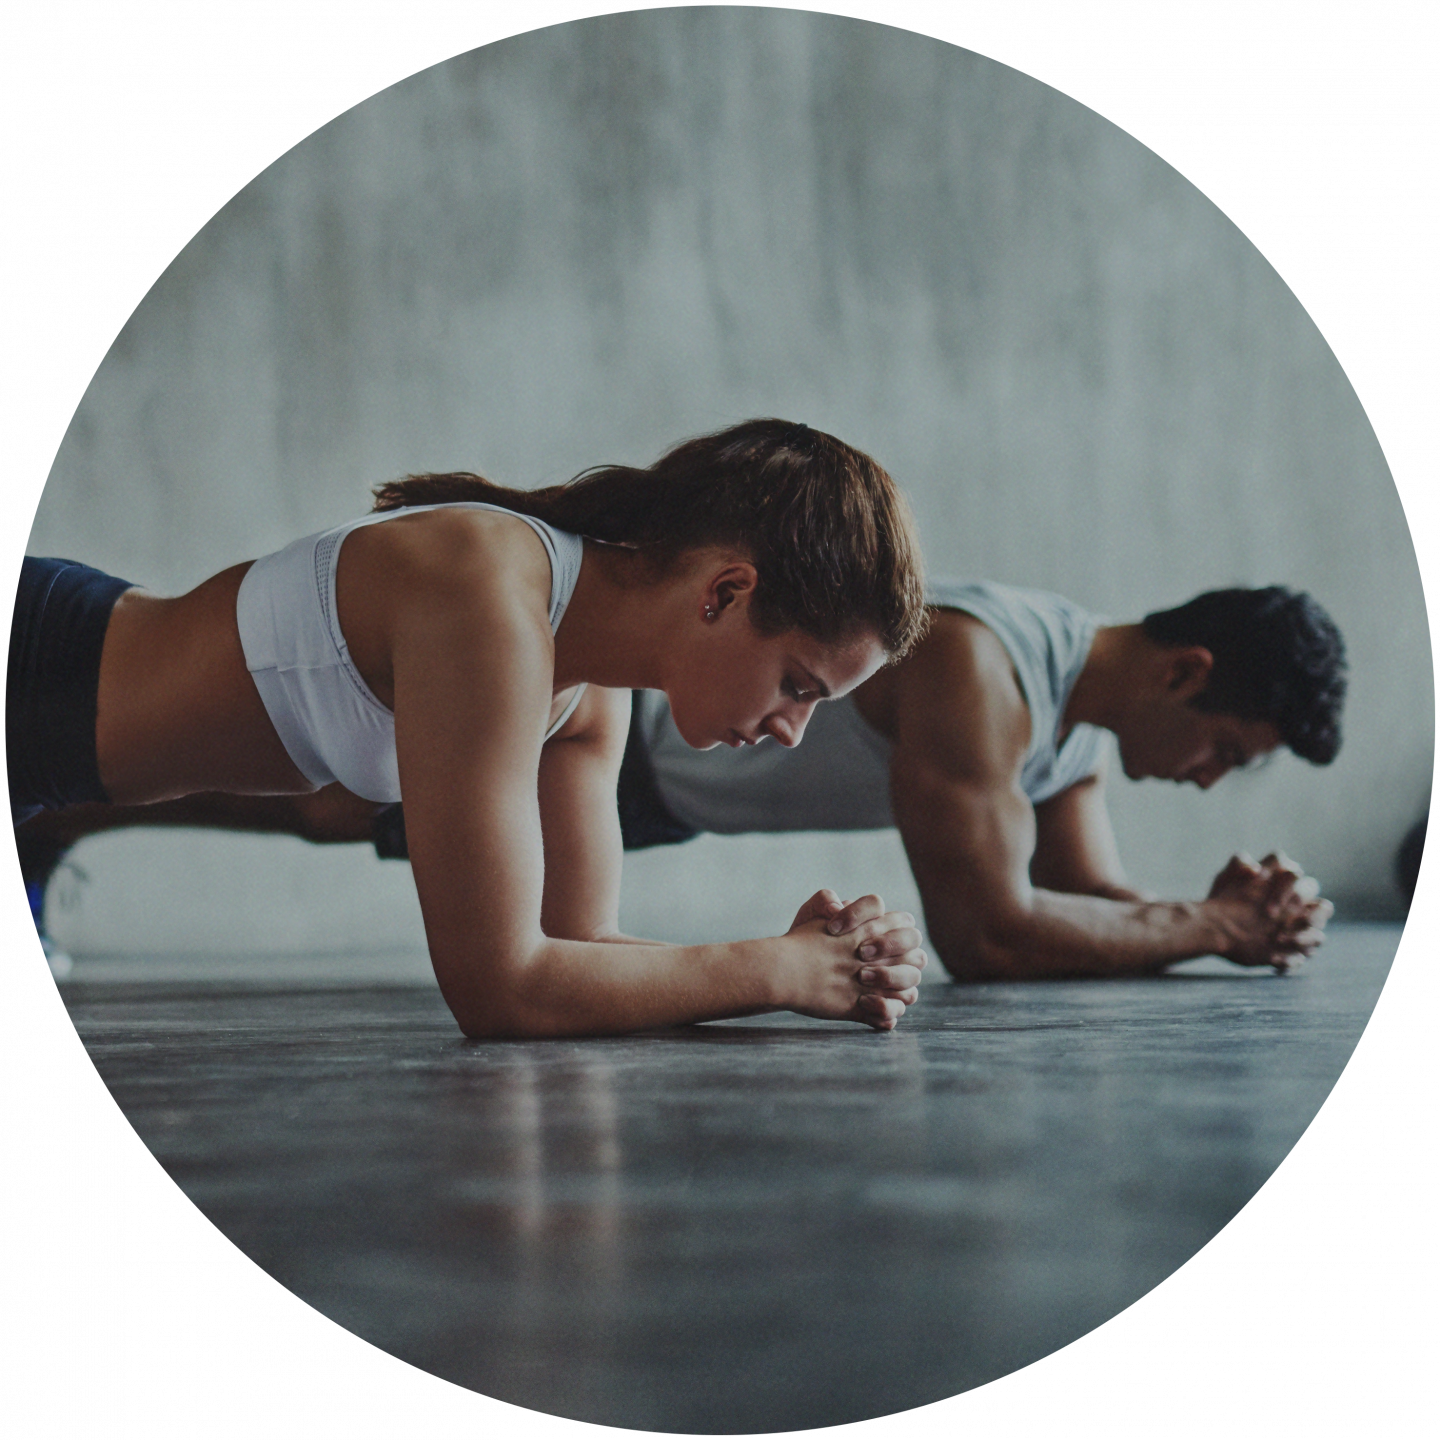 A woman and a man doing the fitness exercise plank in a gym room. team building, team event, plank, planking, fitness, health, bodyweight training, Plank_Fitness_Bodyweight Training